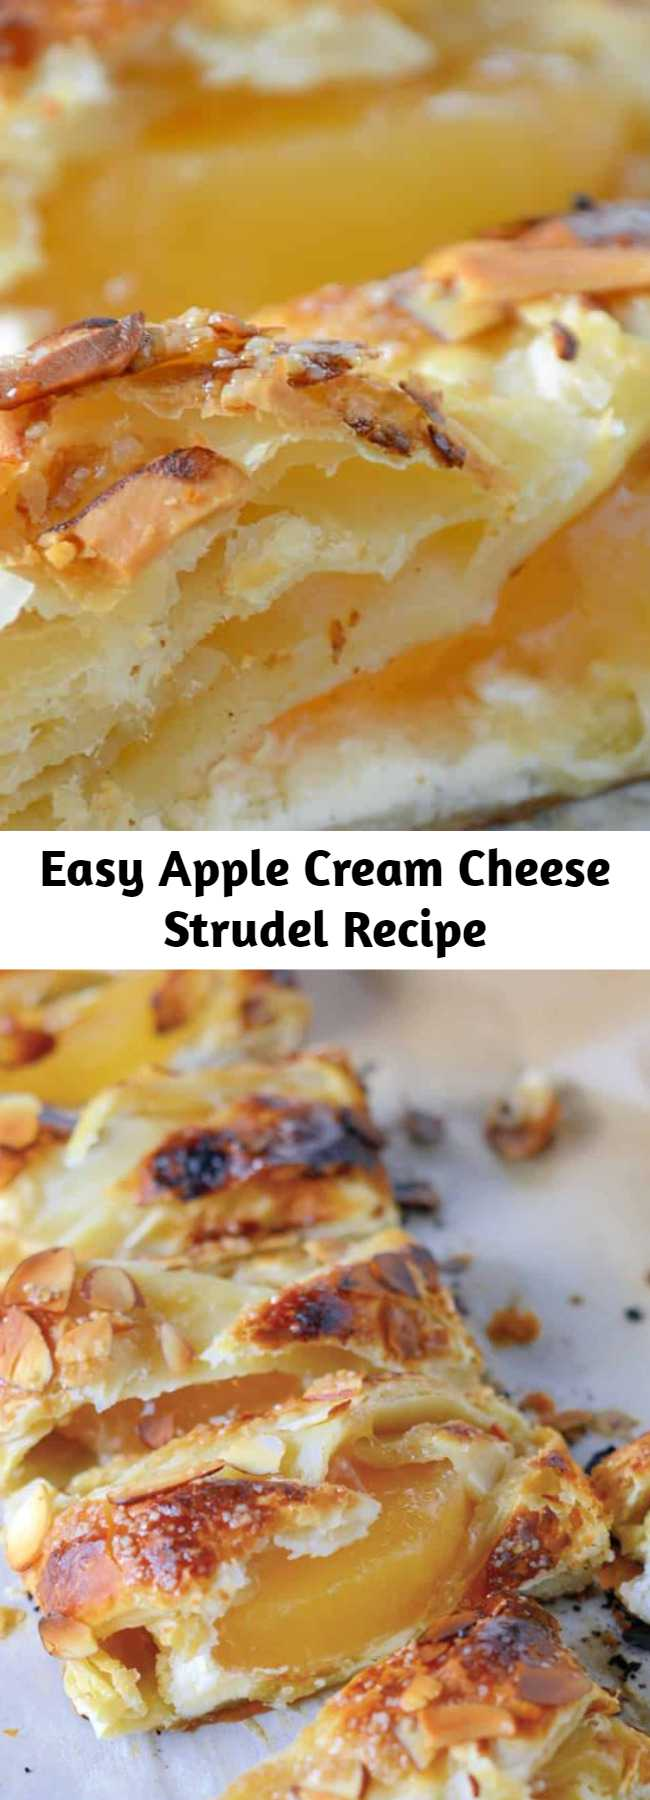 Easy Apple Cream Cheese Strudel Recipe - Pastry isn't as challenging as you might think! My Easy Apple Cream Cheese Strudel uses only 6 ingredients and 10 minutes to prepare for a fancy-pants breakfast or dessert! #applestrudel #easystrudelrecipe